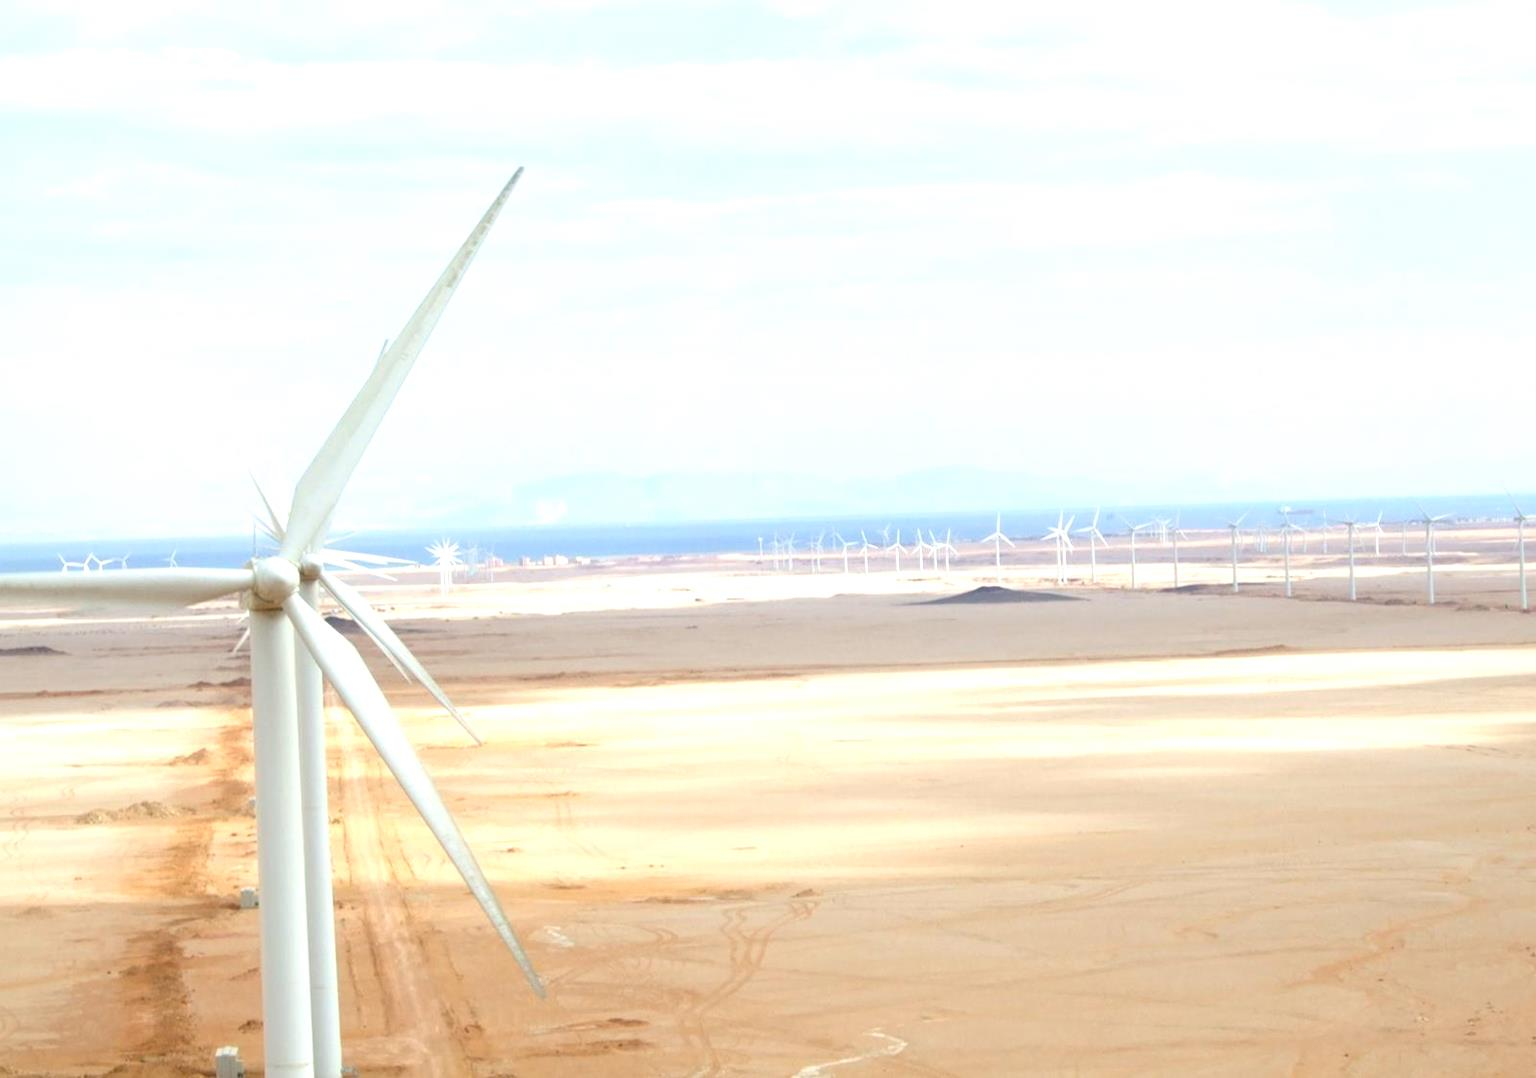 - In the period between 1992-1995, a demonstration wind farm were